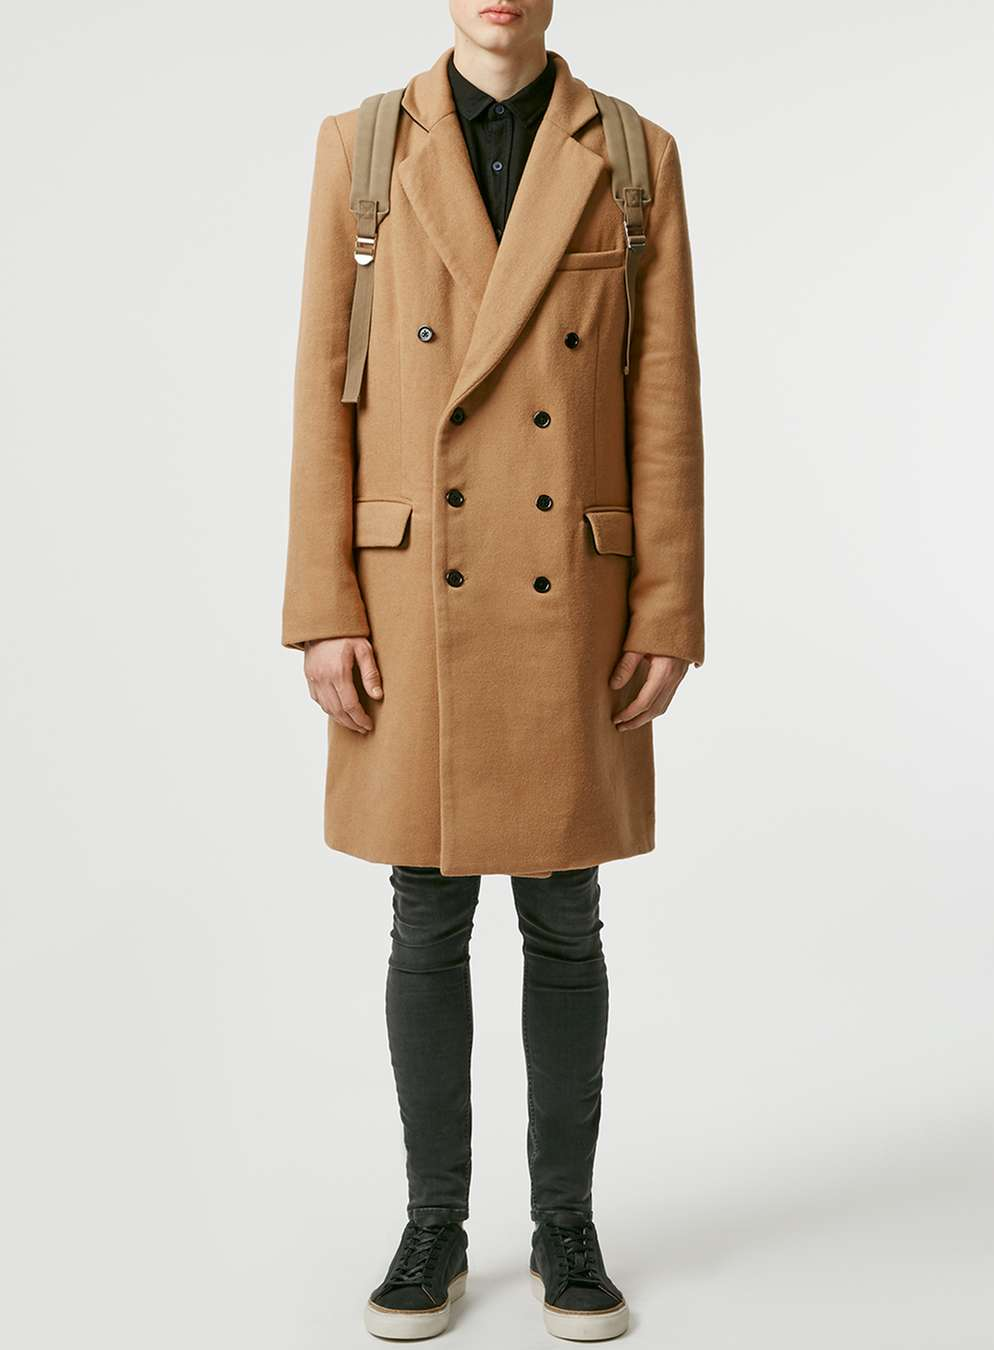 Topman Camel Double-Breasted Coat